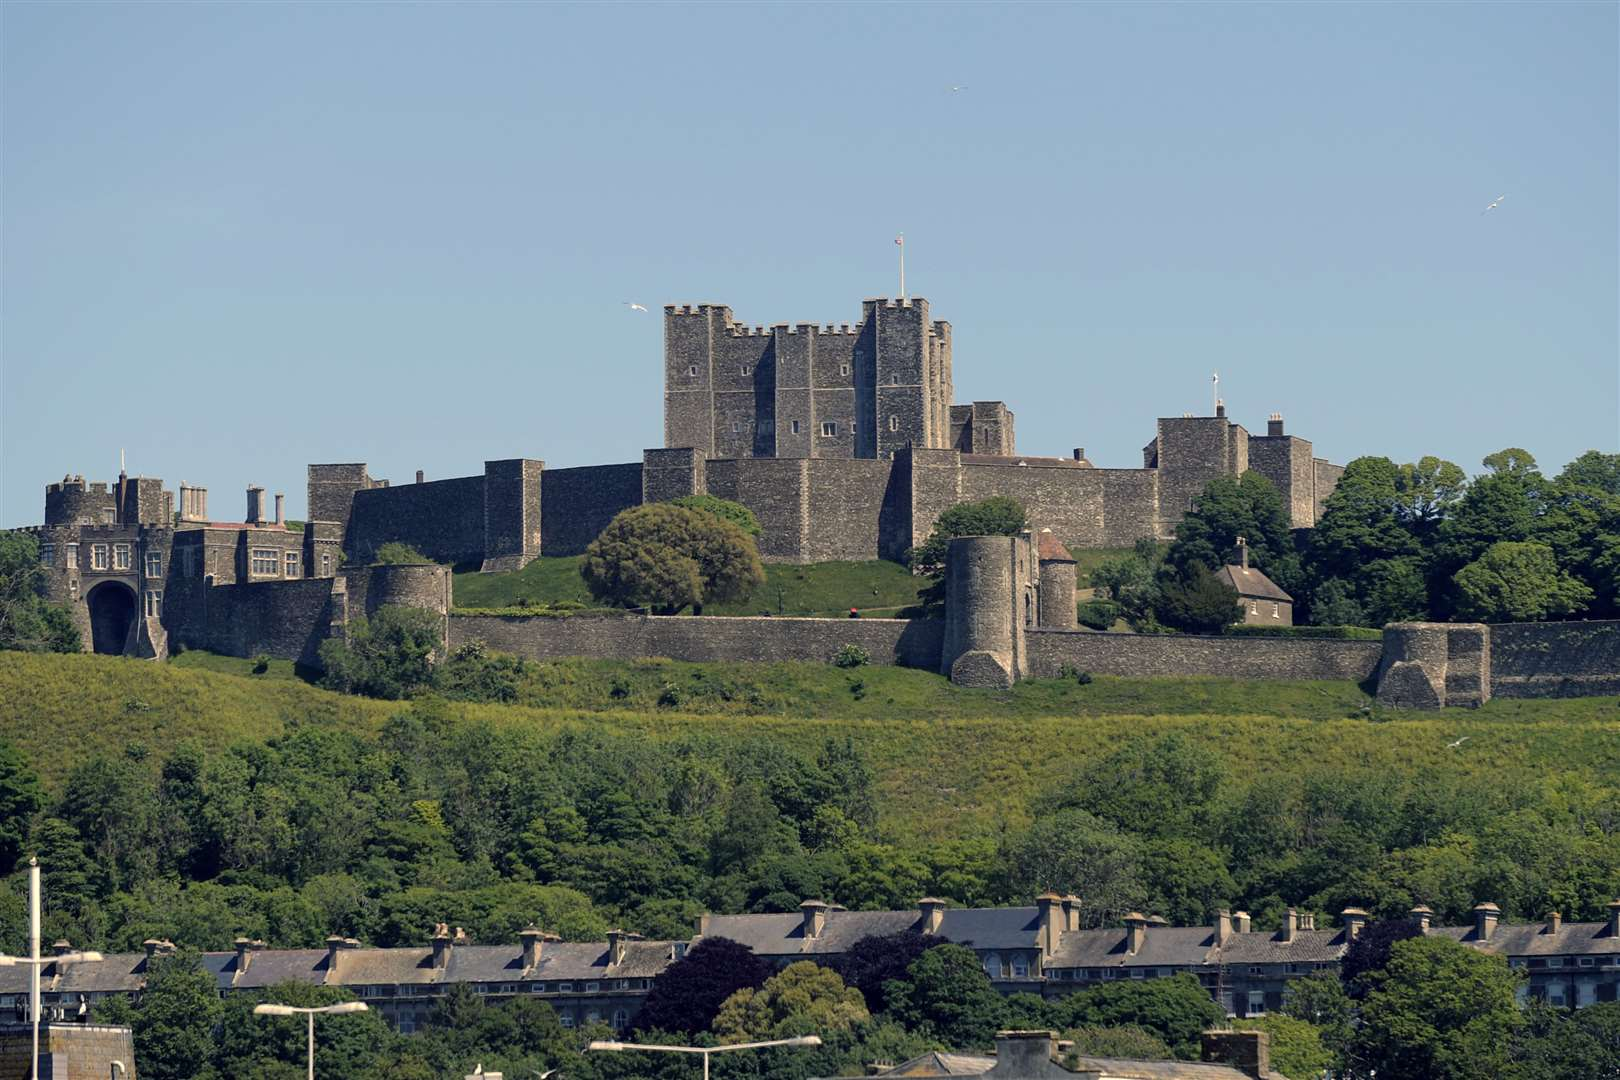 Dover Castle may be a touch bigger - but officers from its garrison are thought to have lived in the house